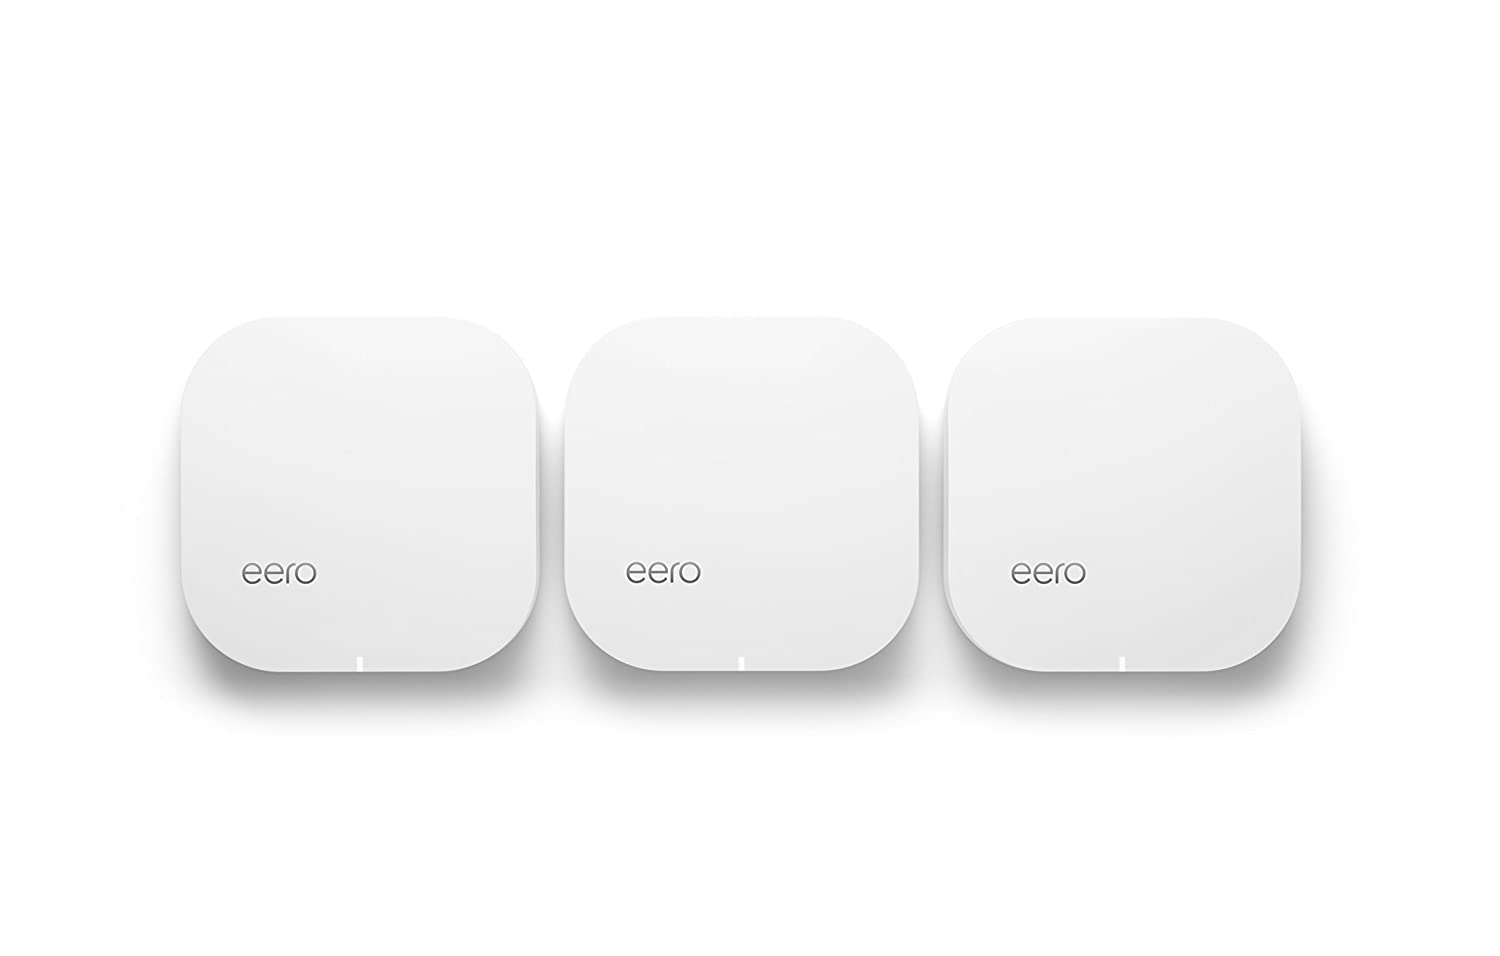 Eero Home Wifi System Pack Of 3 1st Generation 2016 Wireless Network Diagram Simple Computers Accessories